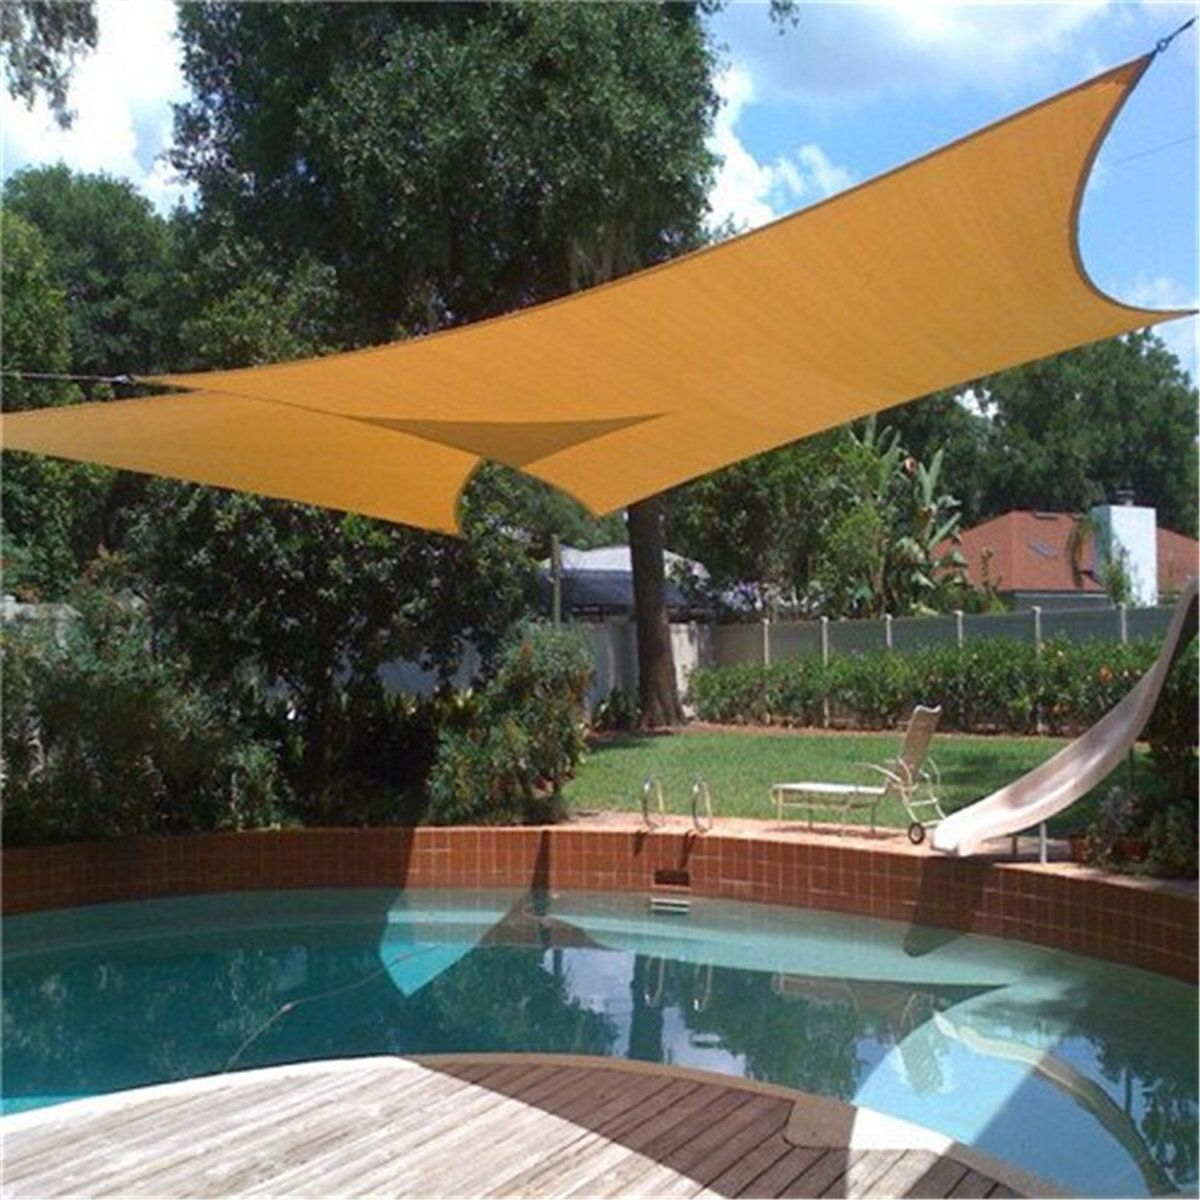 2x1 8m Sun Sailing Shade Mesh Net Garden Plants Covered Awning Waterproof Canopy Anti Uv Sun Shelter Pool Shade Shade Sails Patio Patio Shade